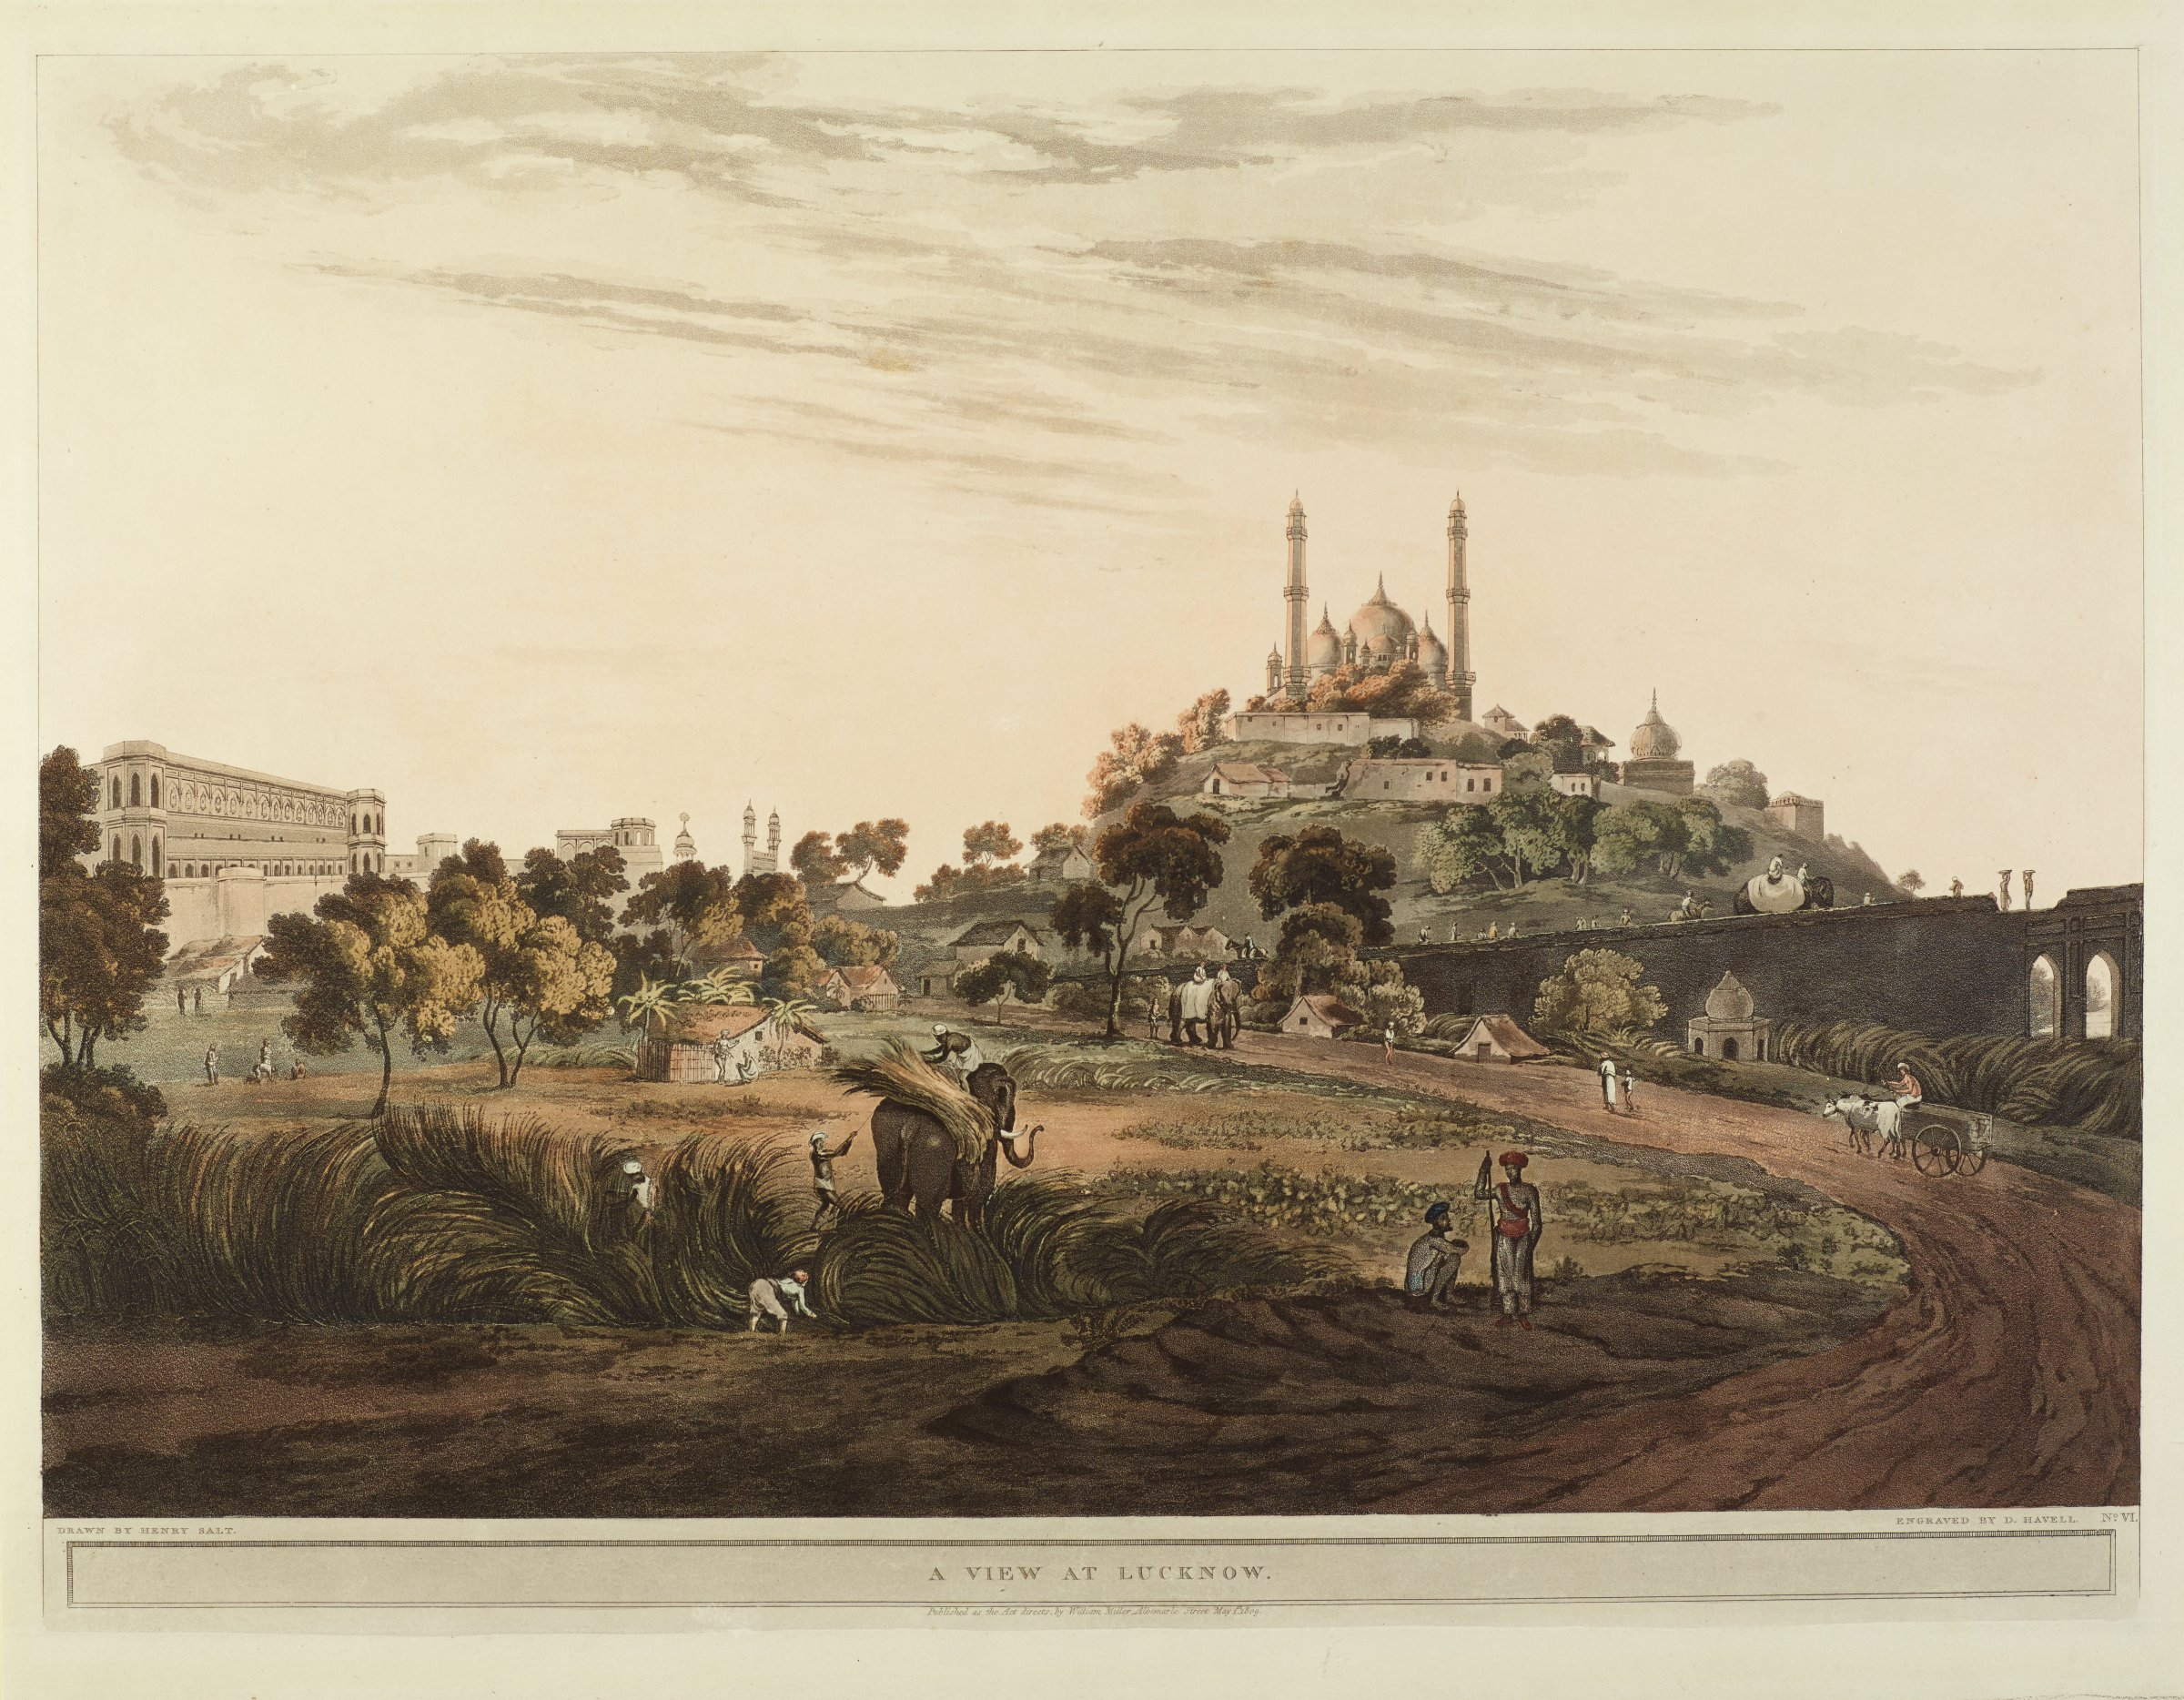 A View at Lucknow, Engraved by Daniel Havell, After drawing by Henry Salt, Published by William Miller, etching and hand-colored aquatint